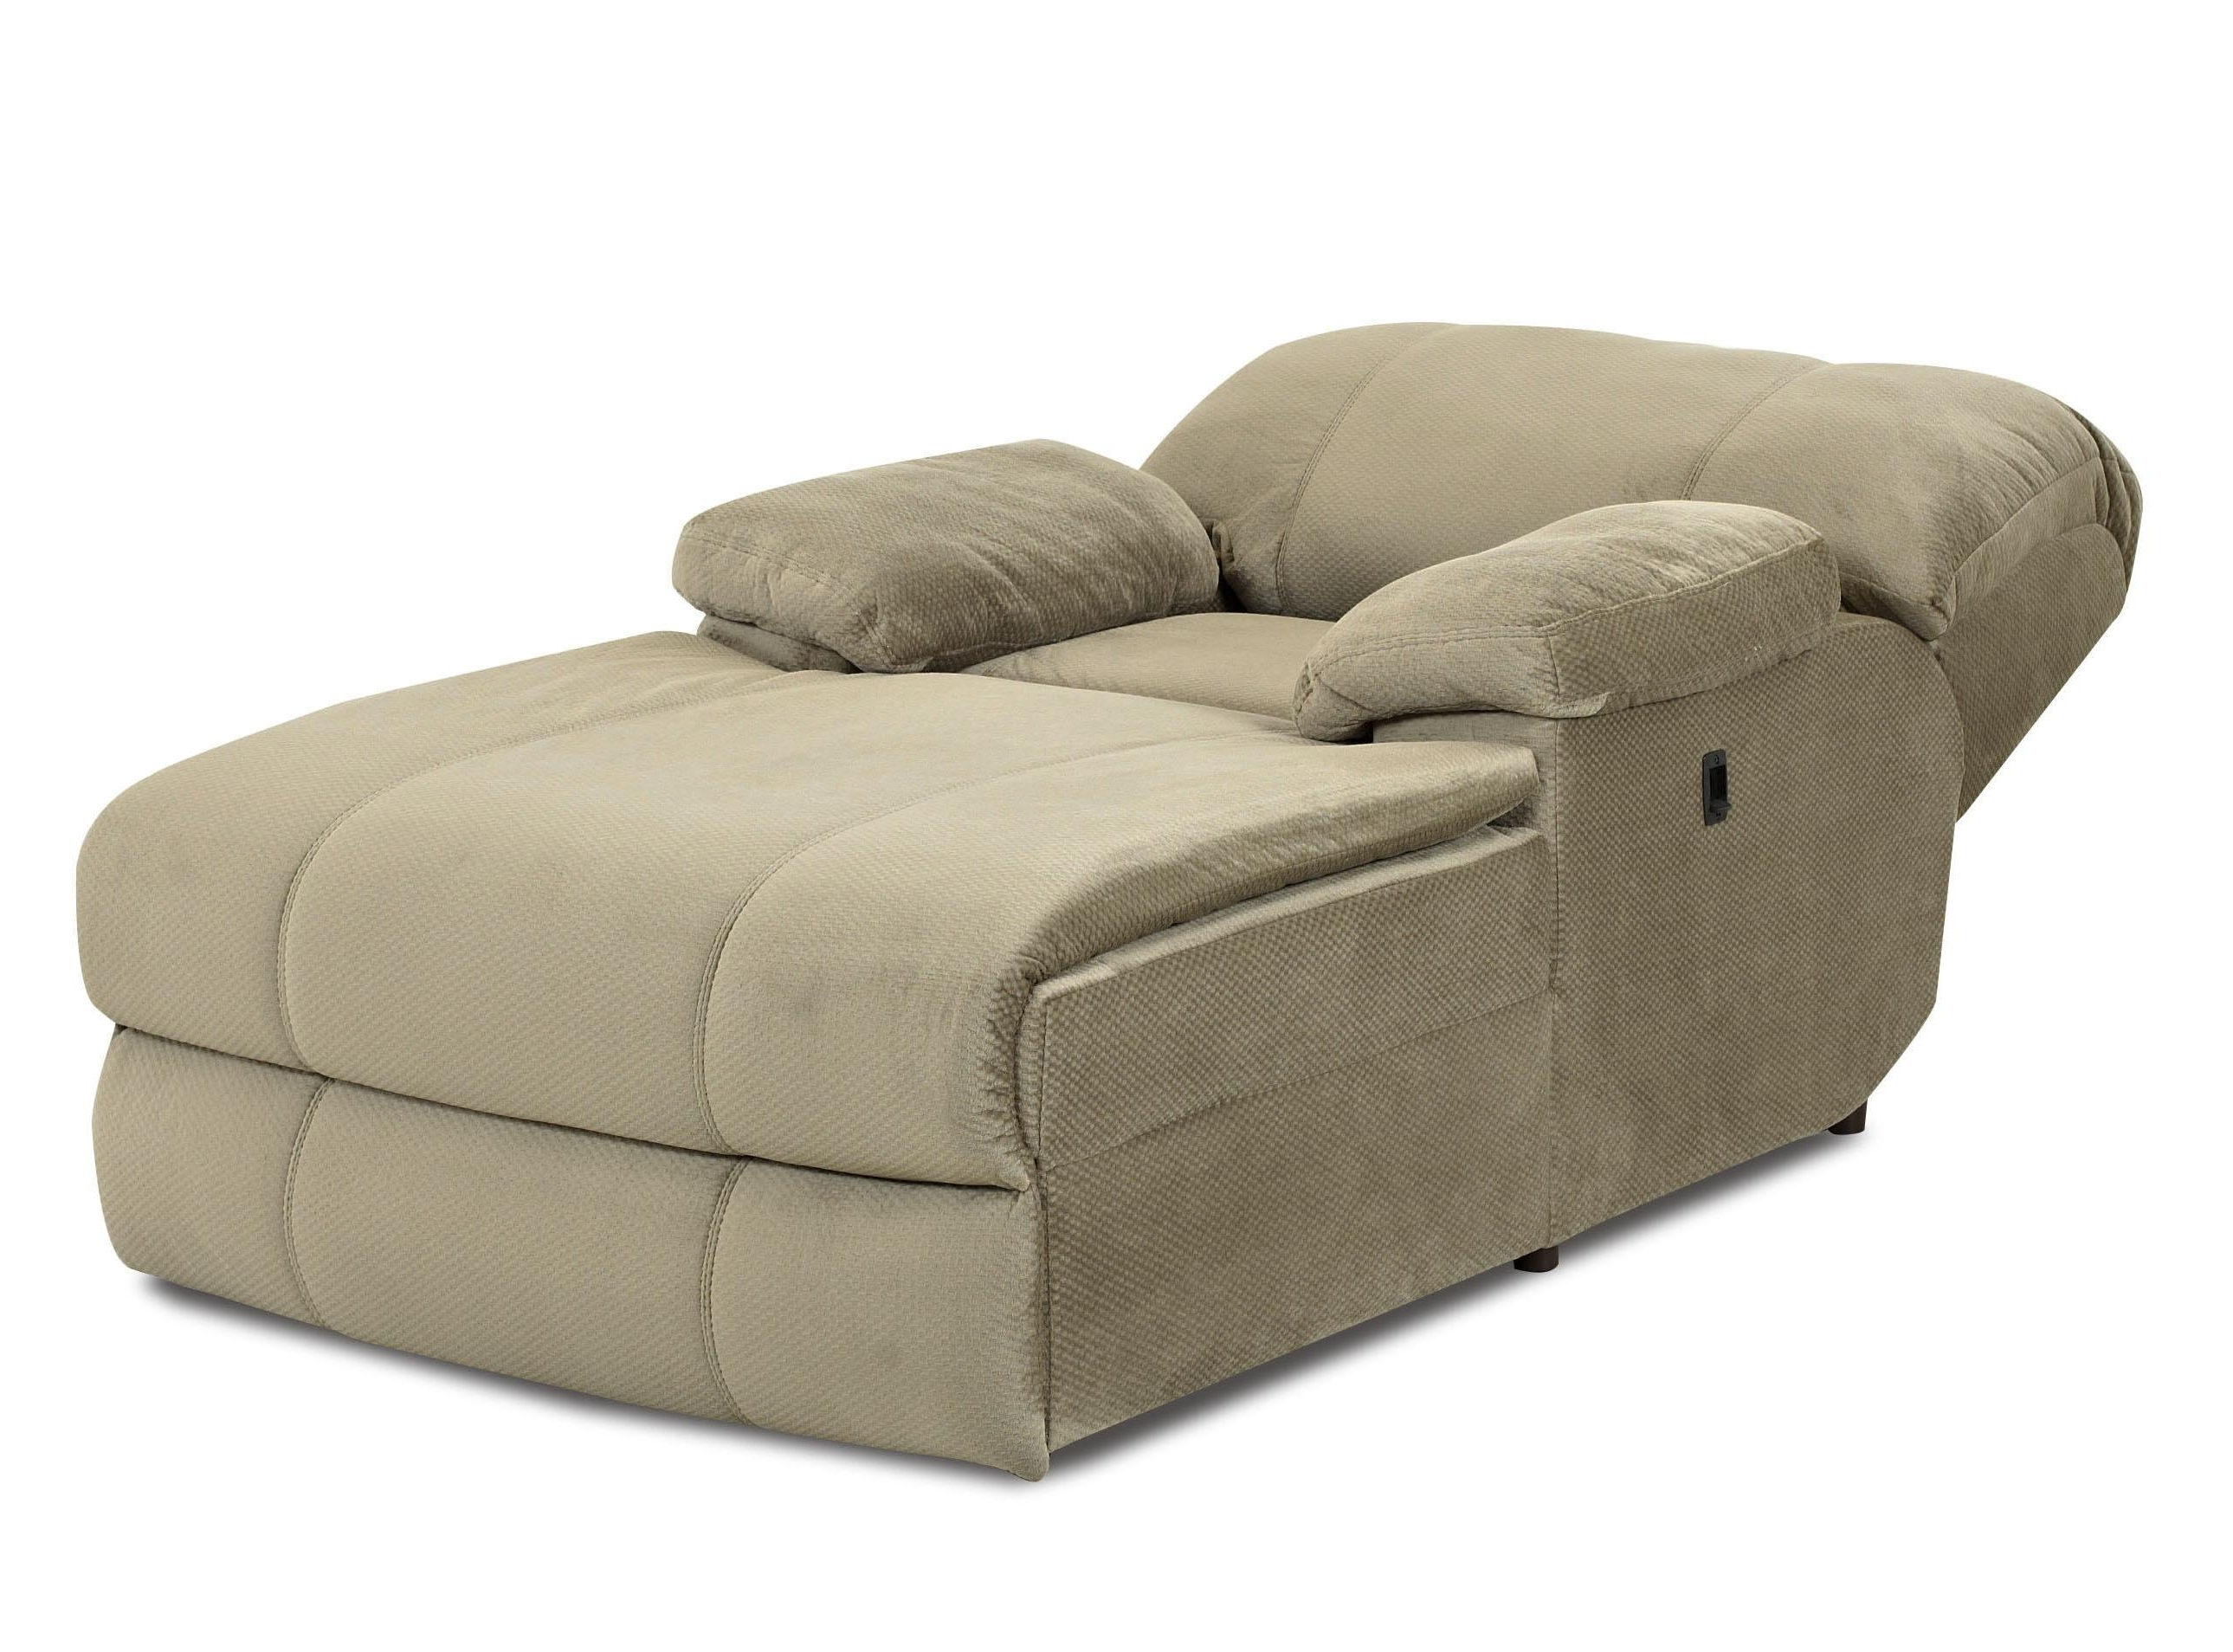 Preferred Chairs: Astounding Chaise Lounge Chairs Indoors Chaise Lounge Regarding Chaise Lounge Chairs For Indoor (View 4 of 15)